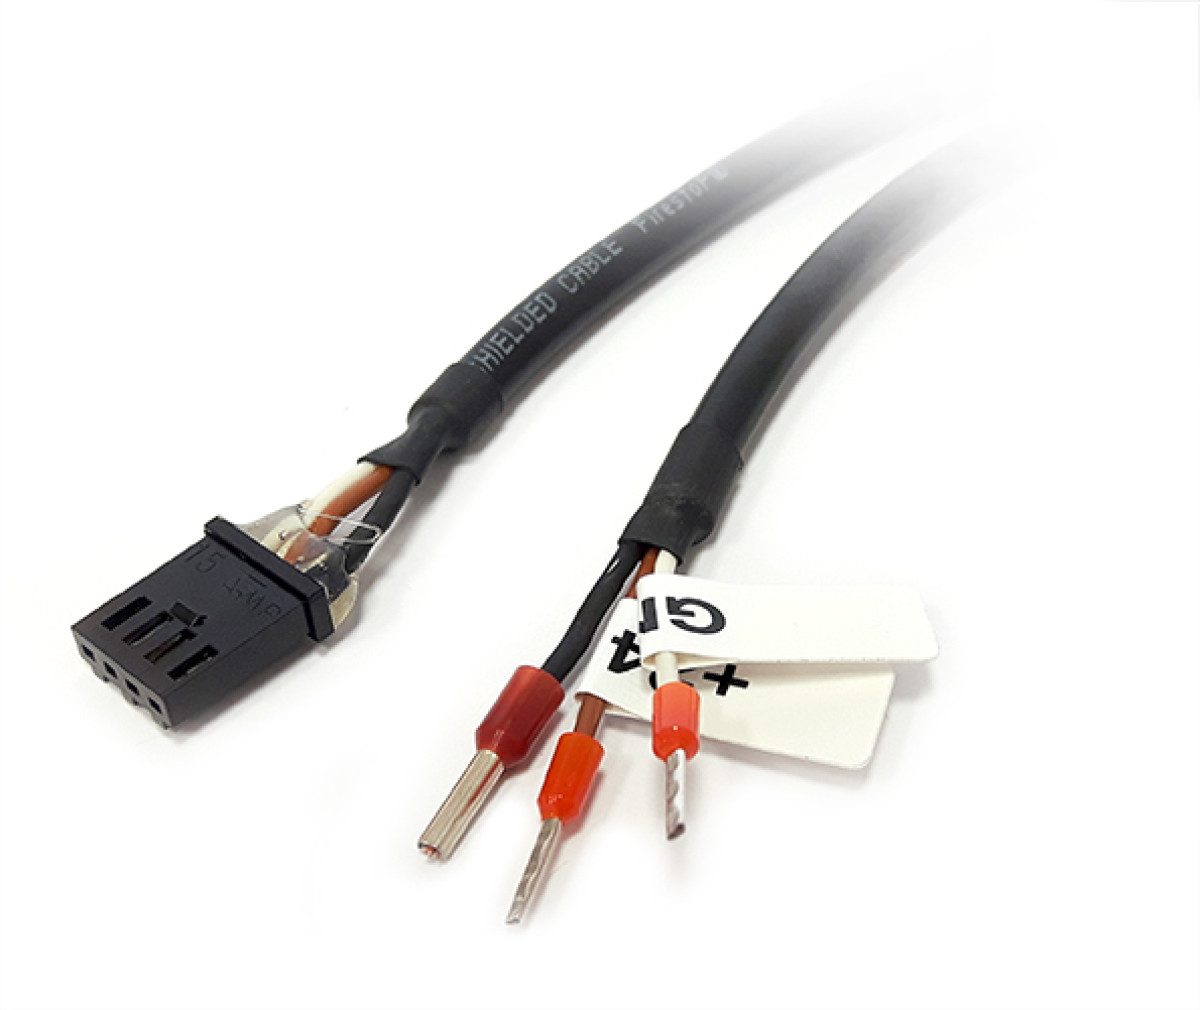 Power cable for TCZR and MCZR products, 0.6 m